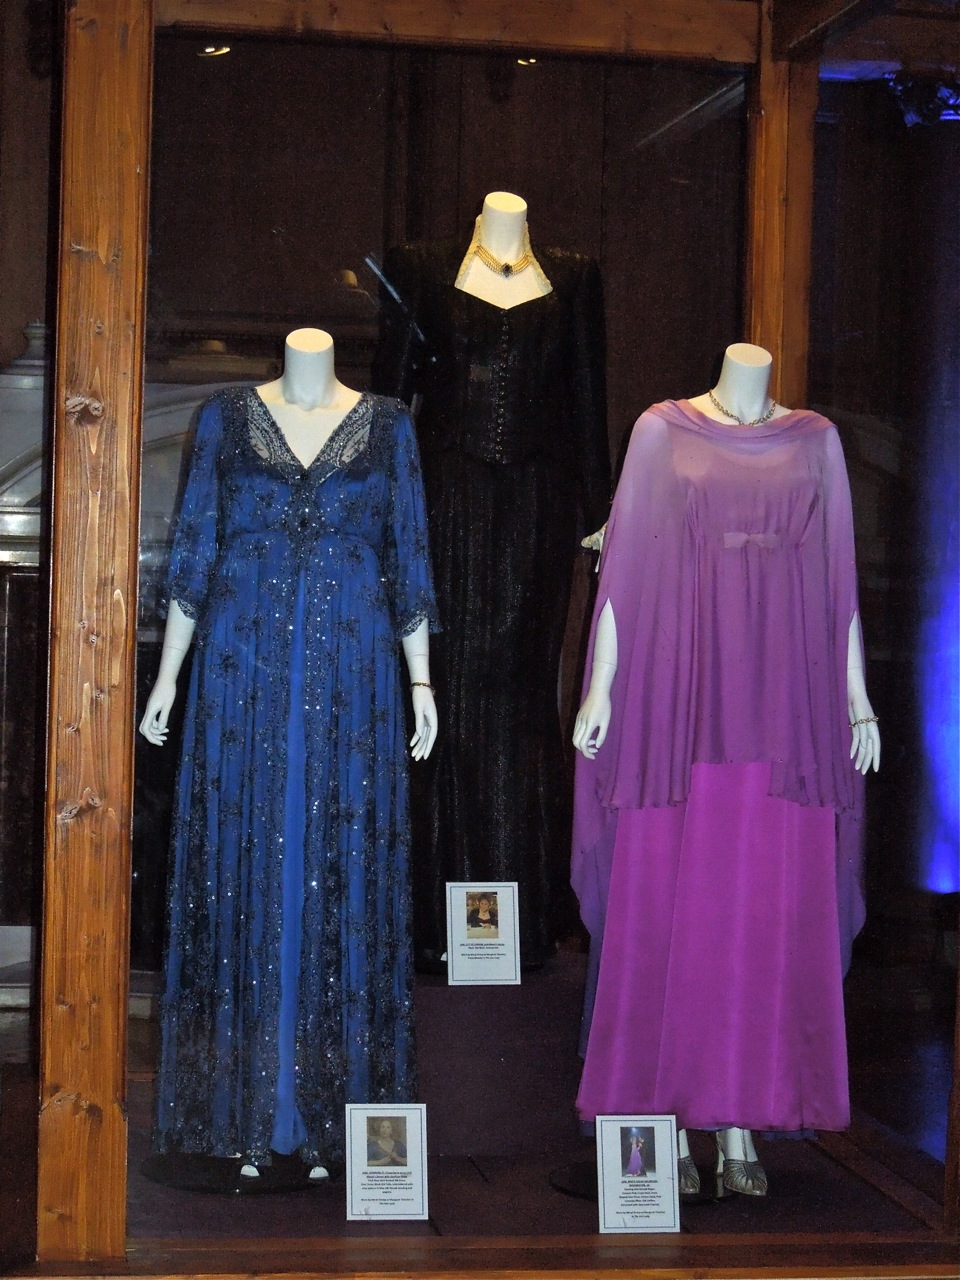 Sioux Indian Museum in addition Beautifuldecay Book 6future Perfect besides 13238715 as well Albany Theater furthermore Gowns Worn By Meryl Streep As Margaret. on oscar howe museum